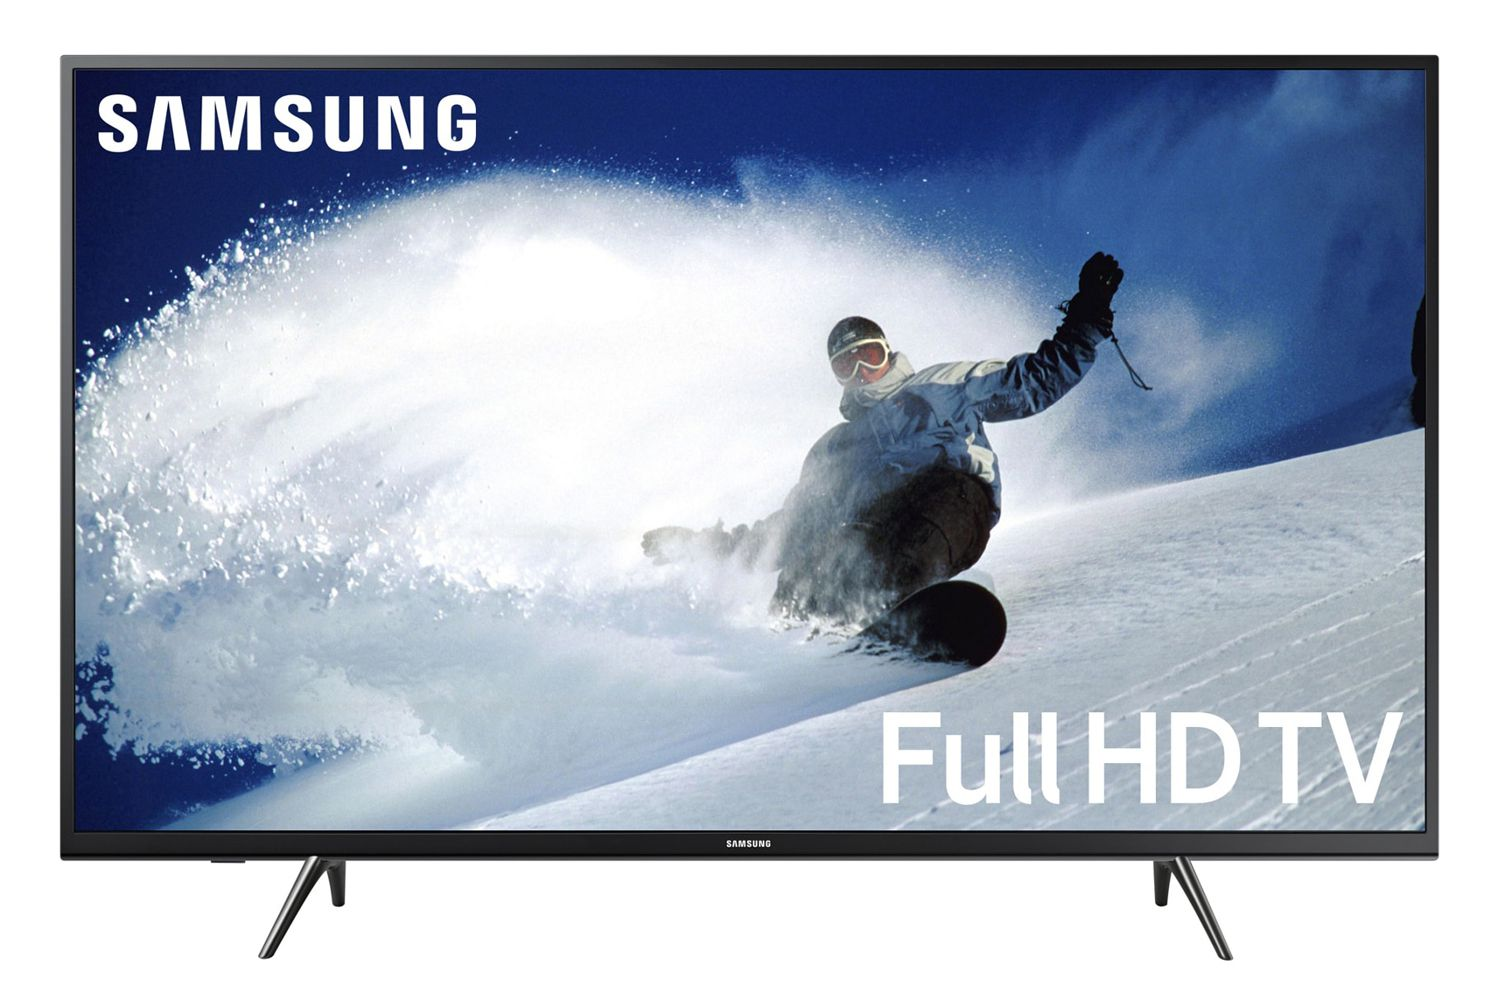 FHD vs UHD: What's The Difference?